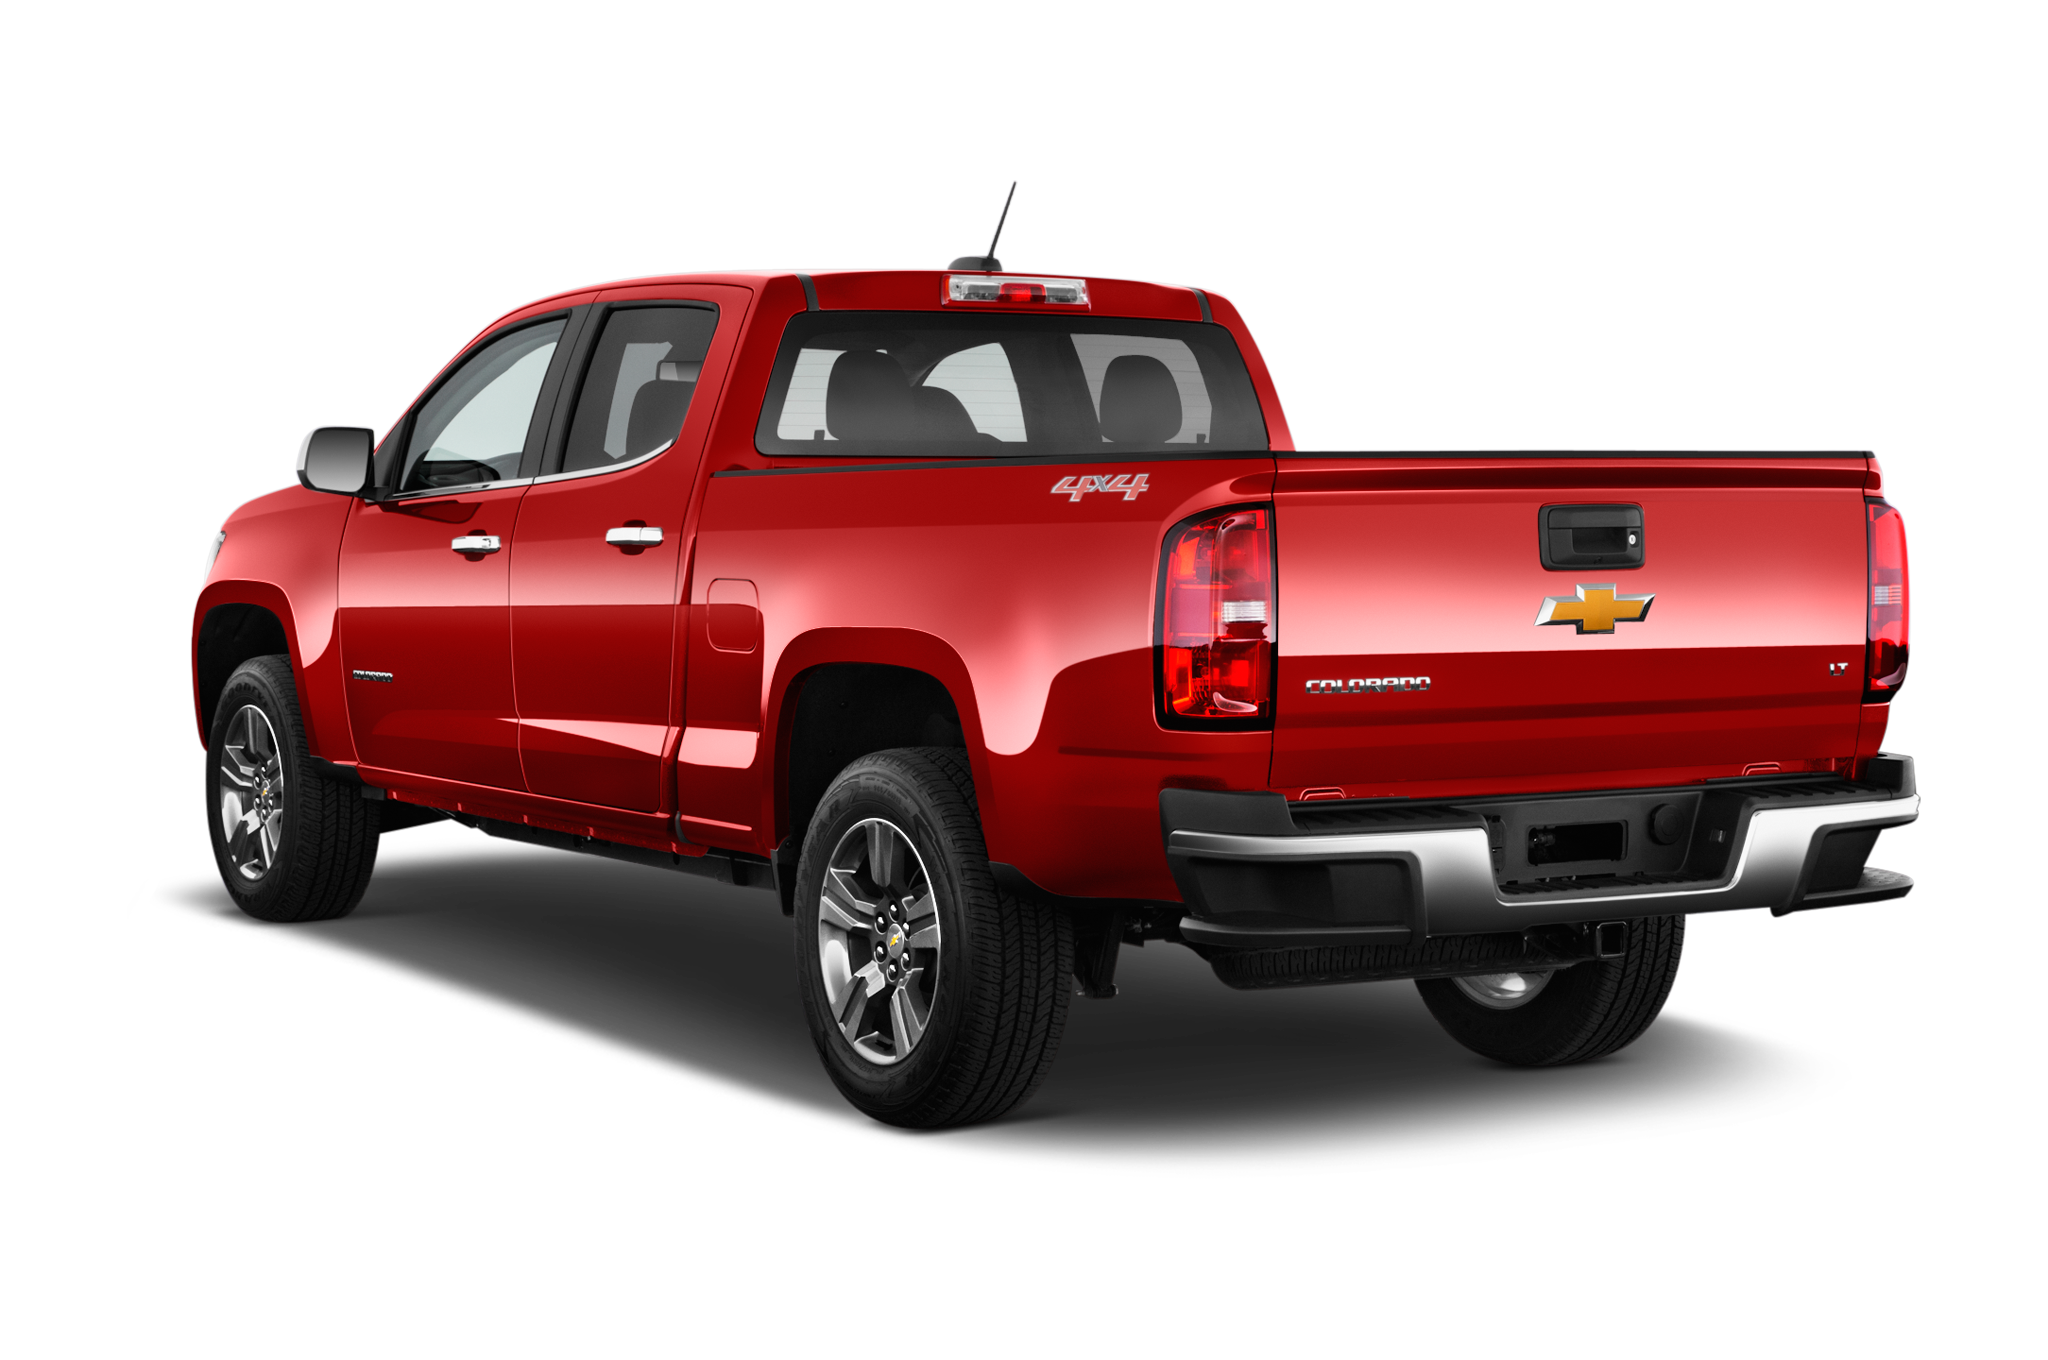 Bed side view png. Clipart cars back